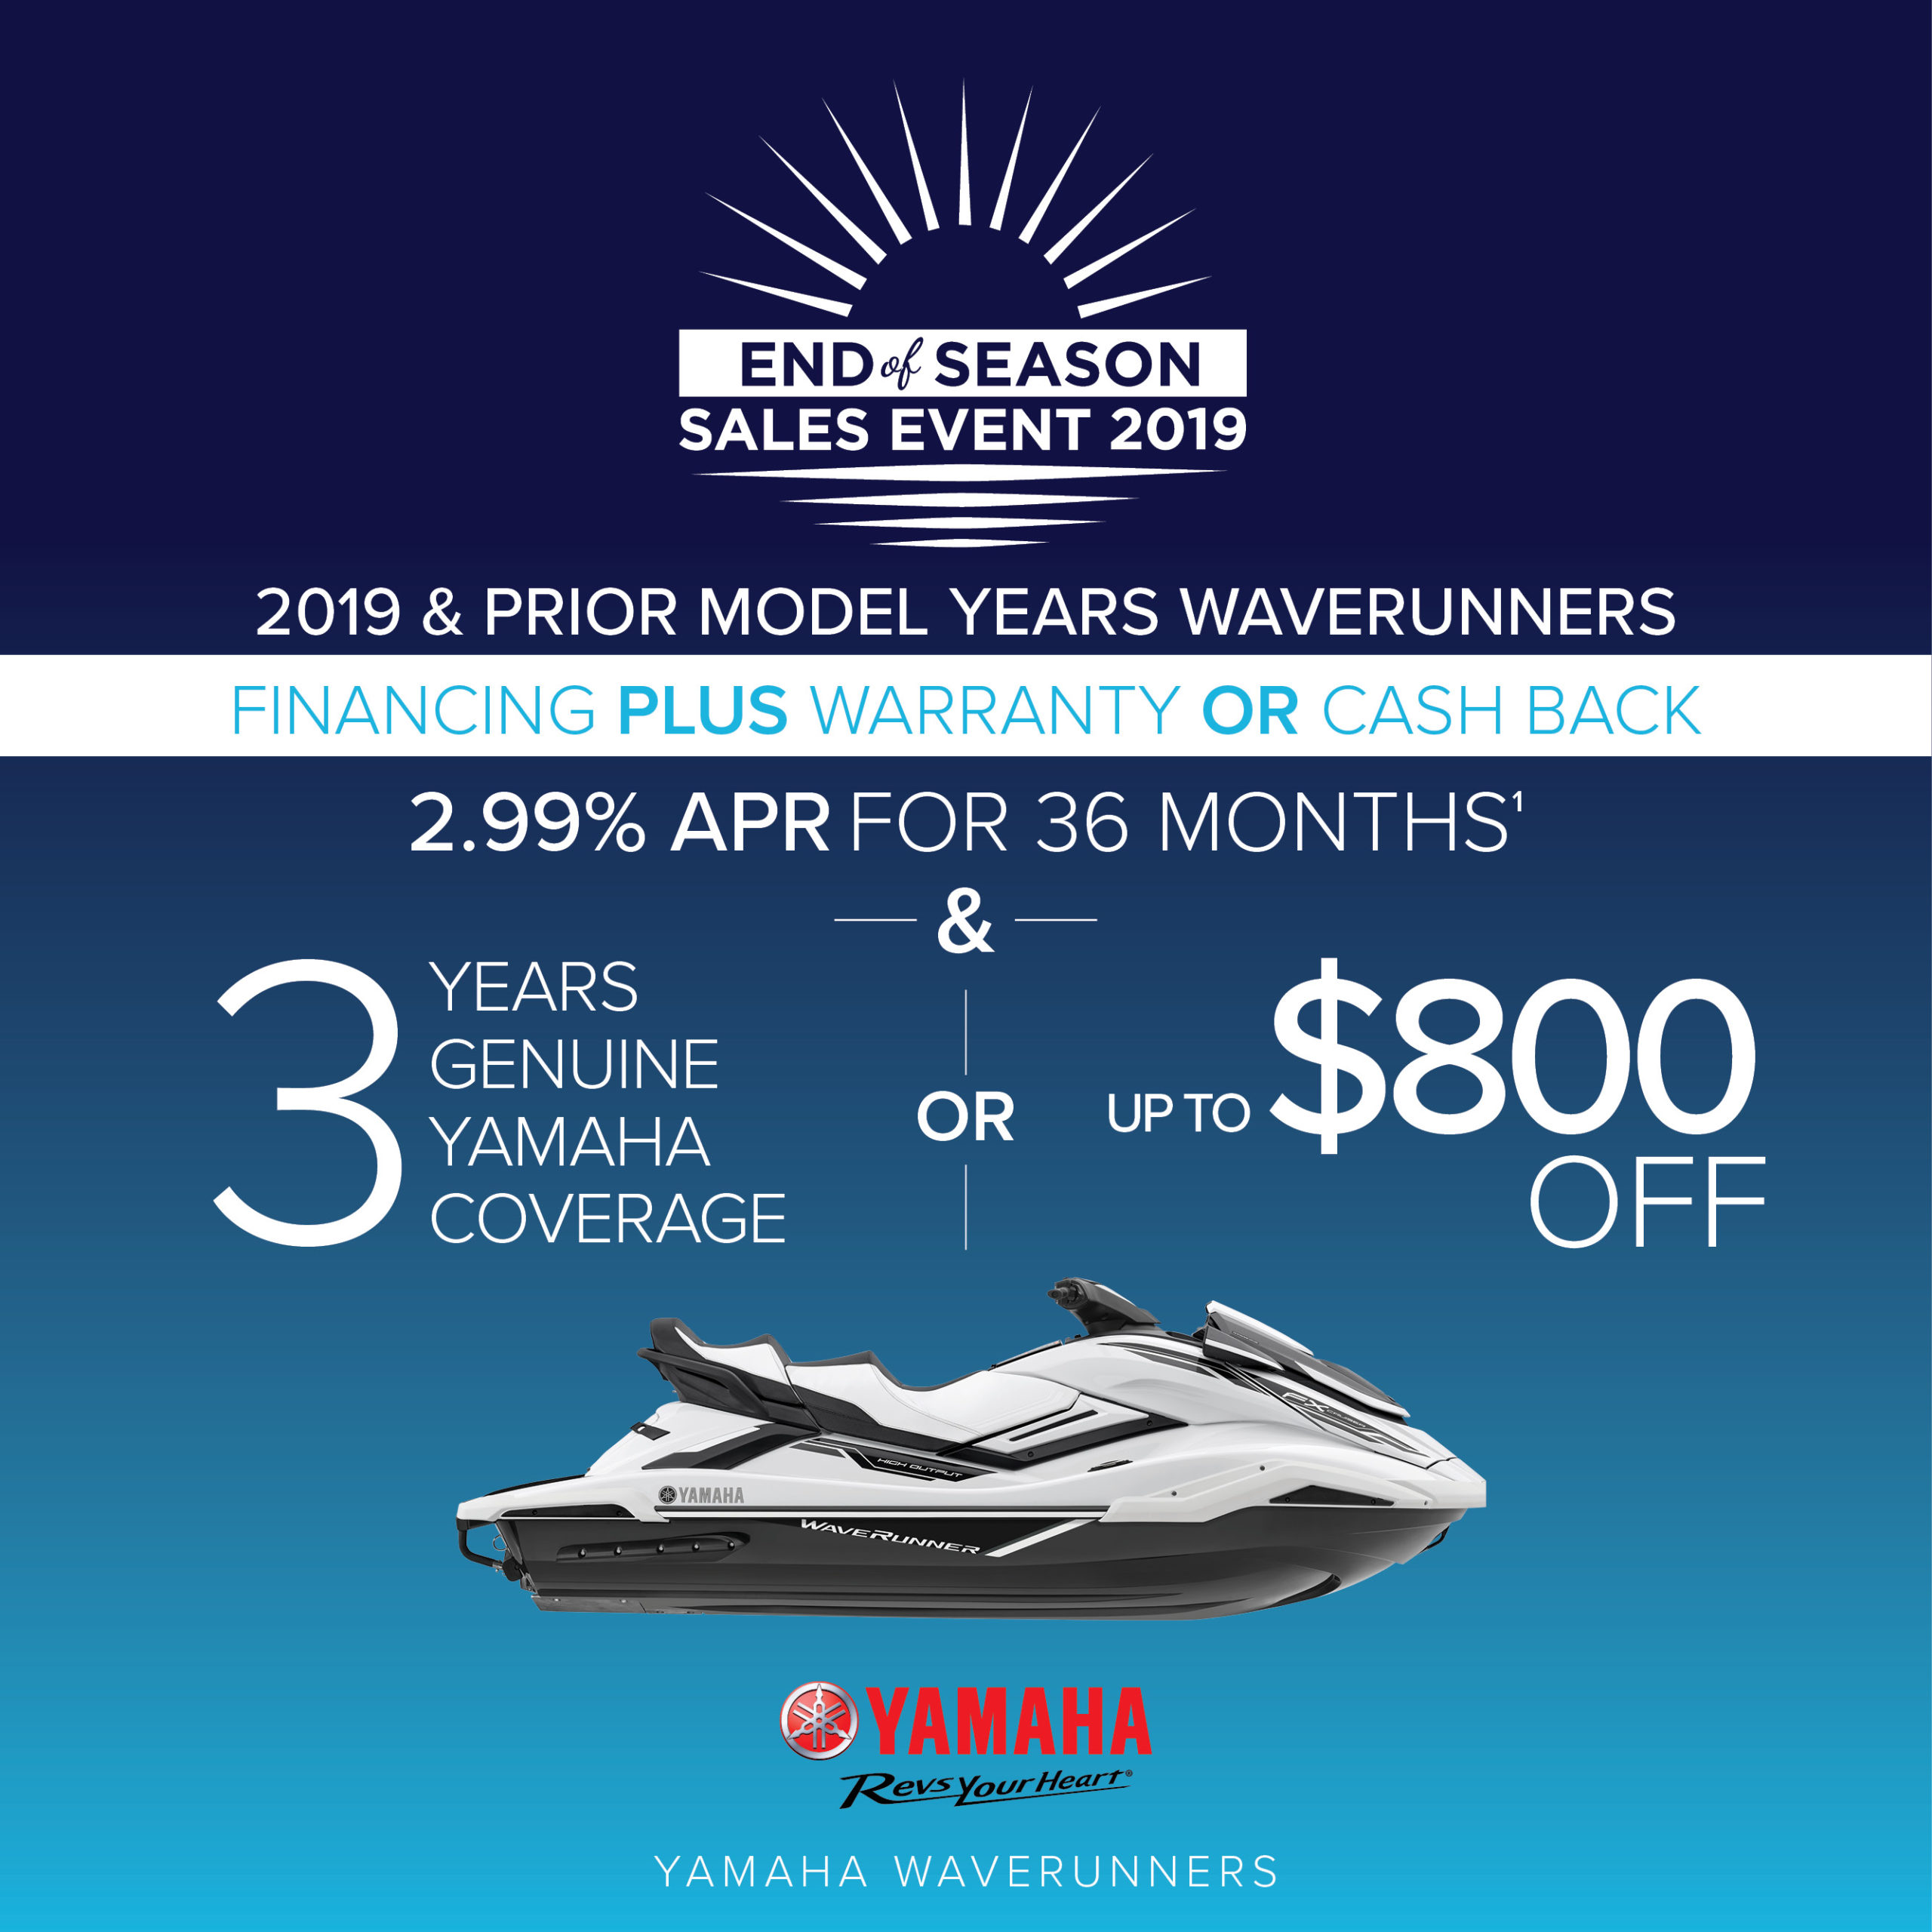 2020 Boat Shows Official Site Of The 2020 Boat Show Season